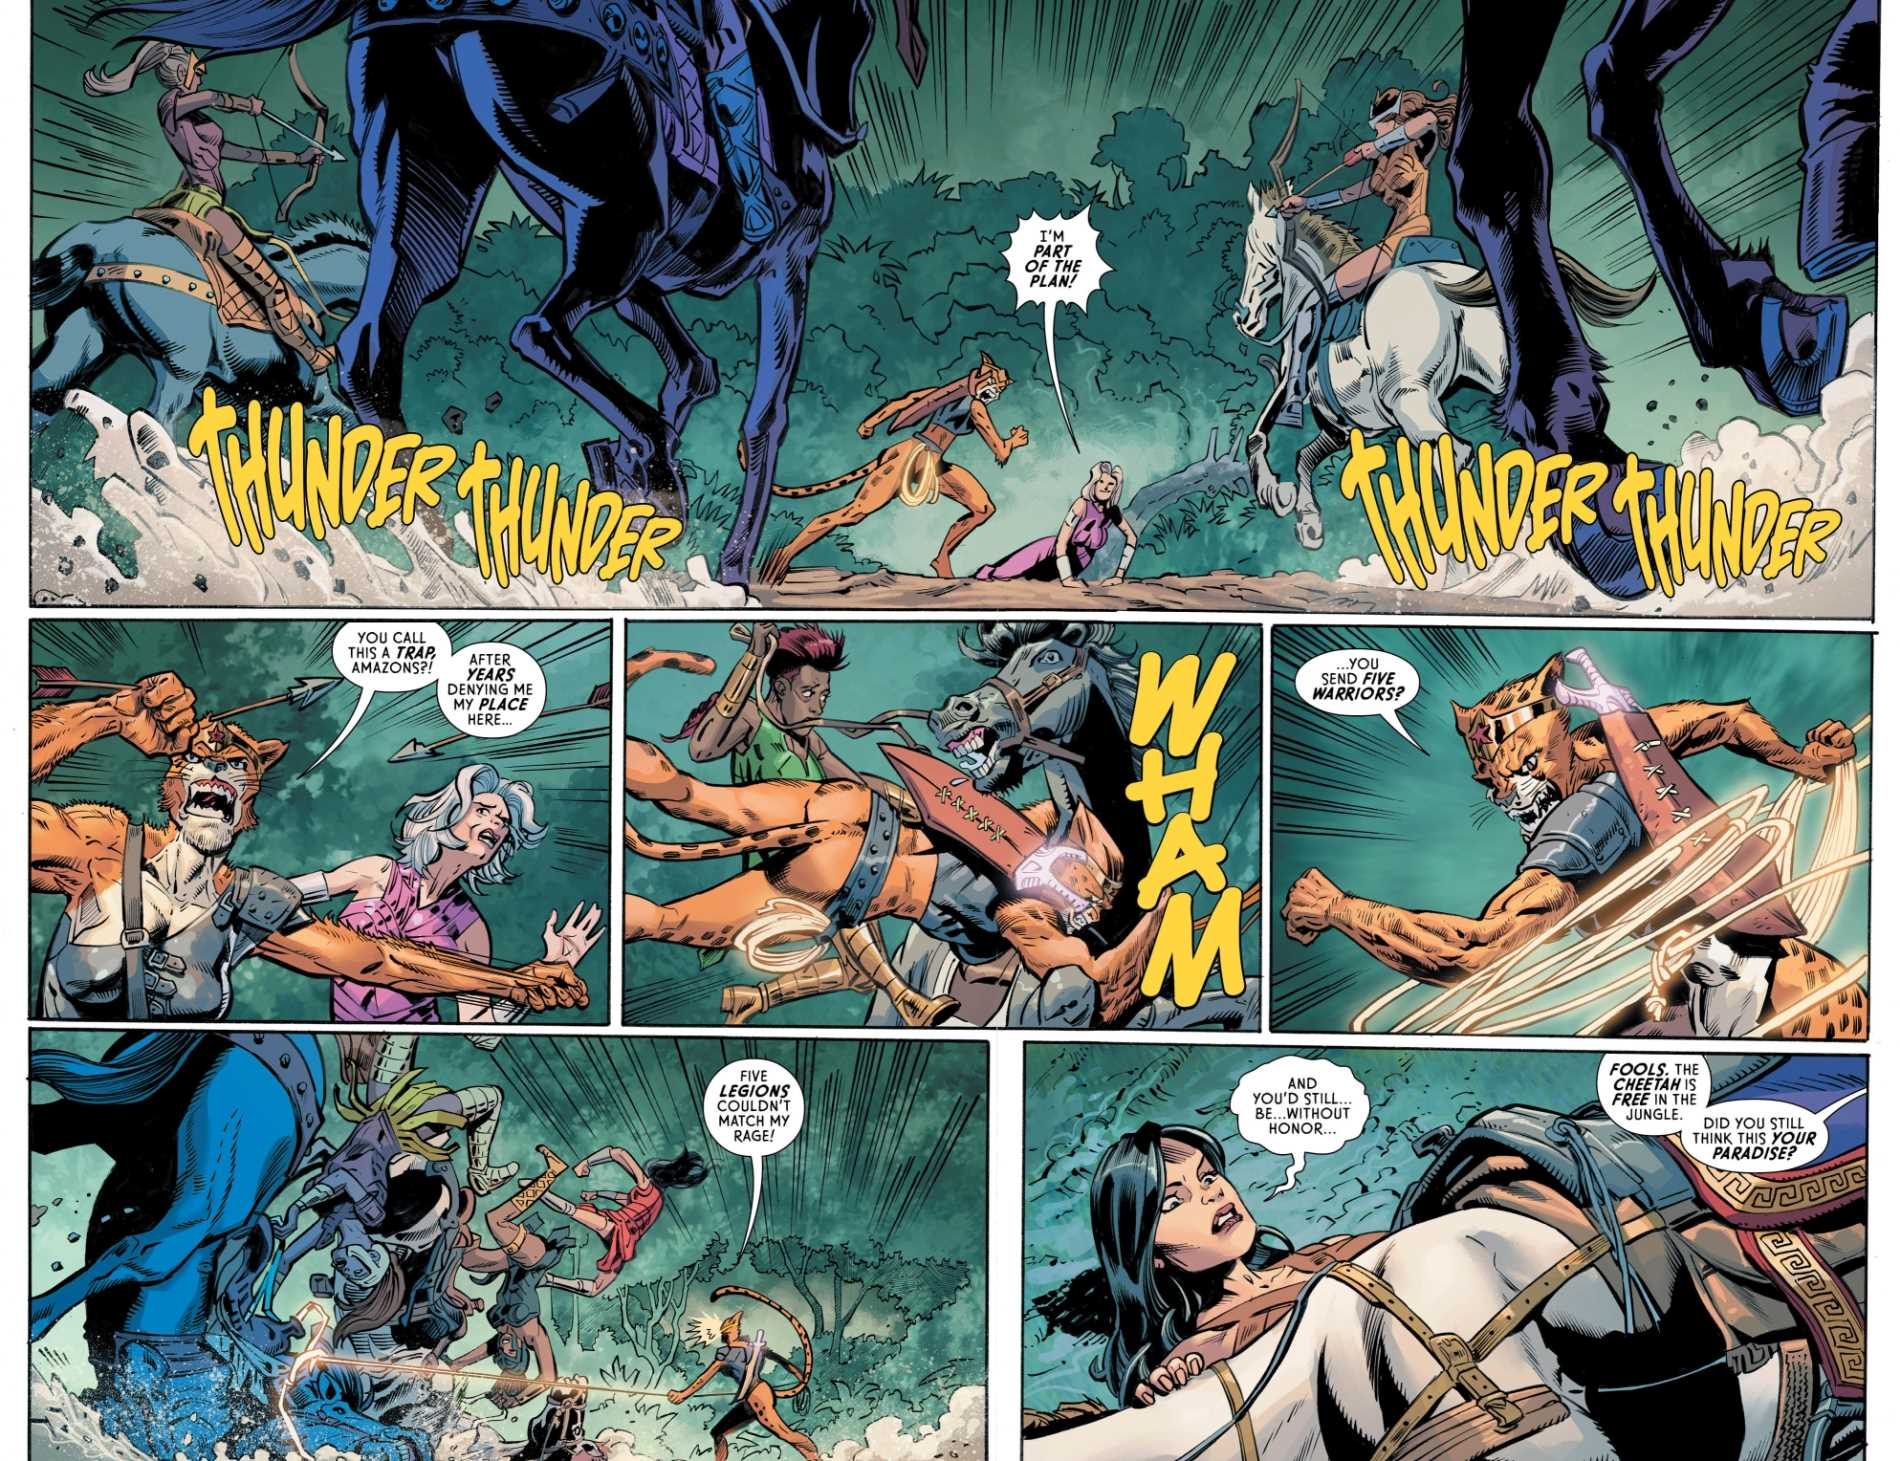 Wonder Woman #82, Page #2/3: Cheetah battles with Amazons.